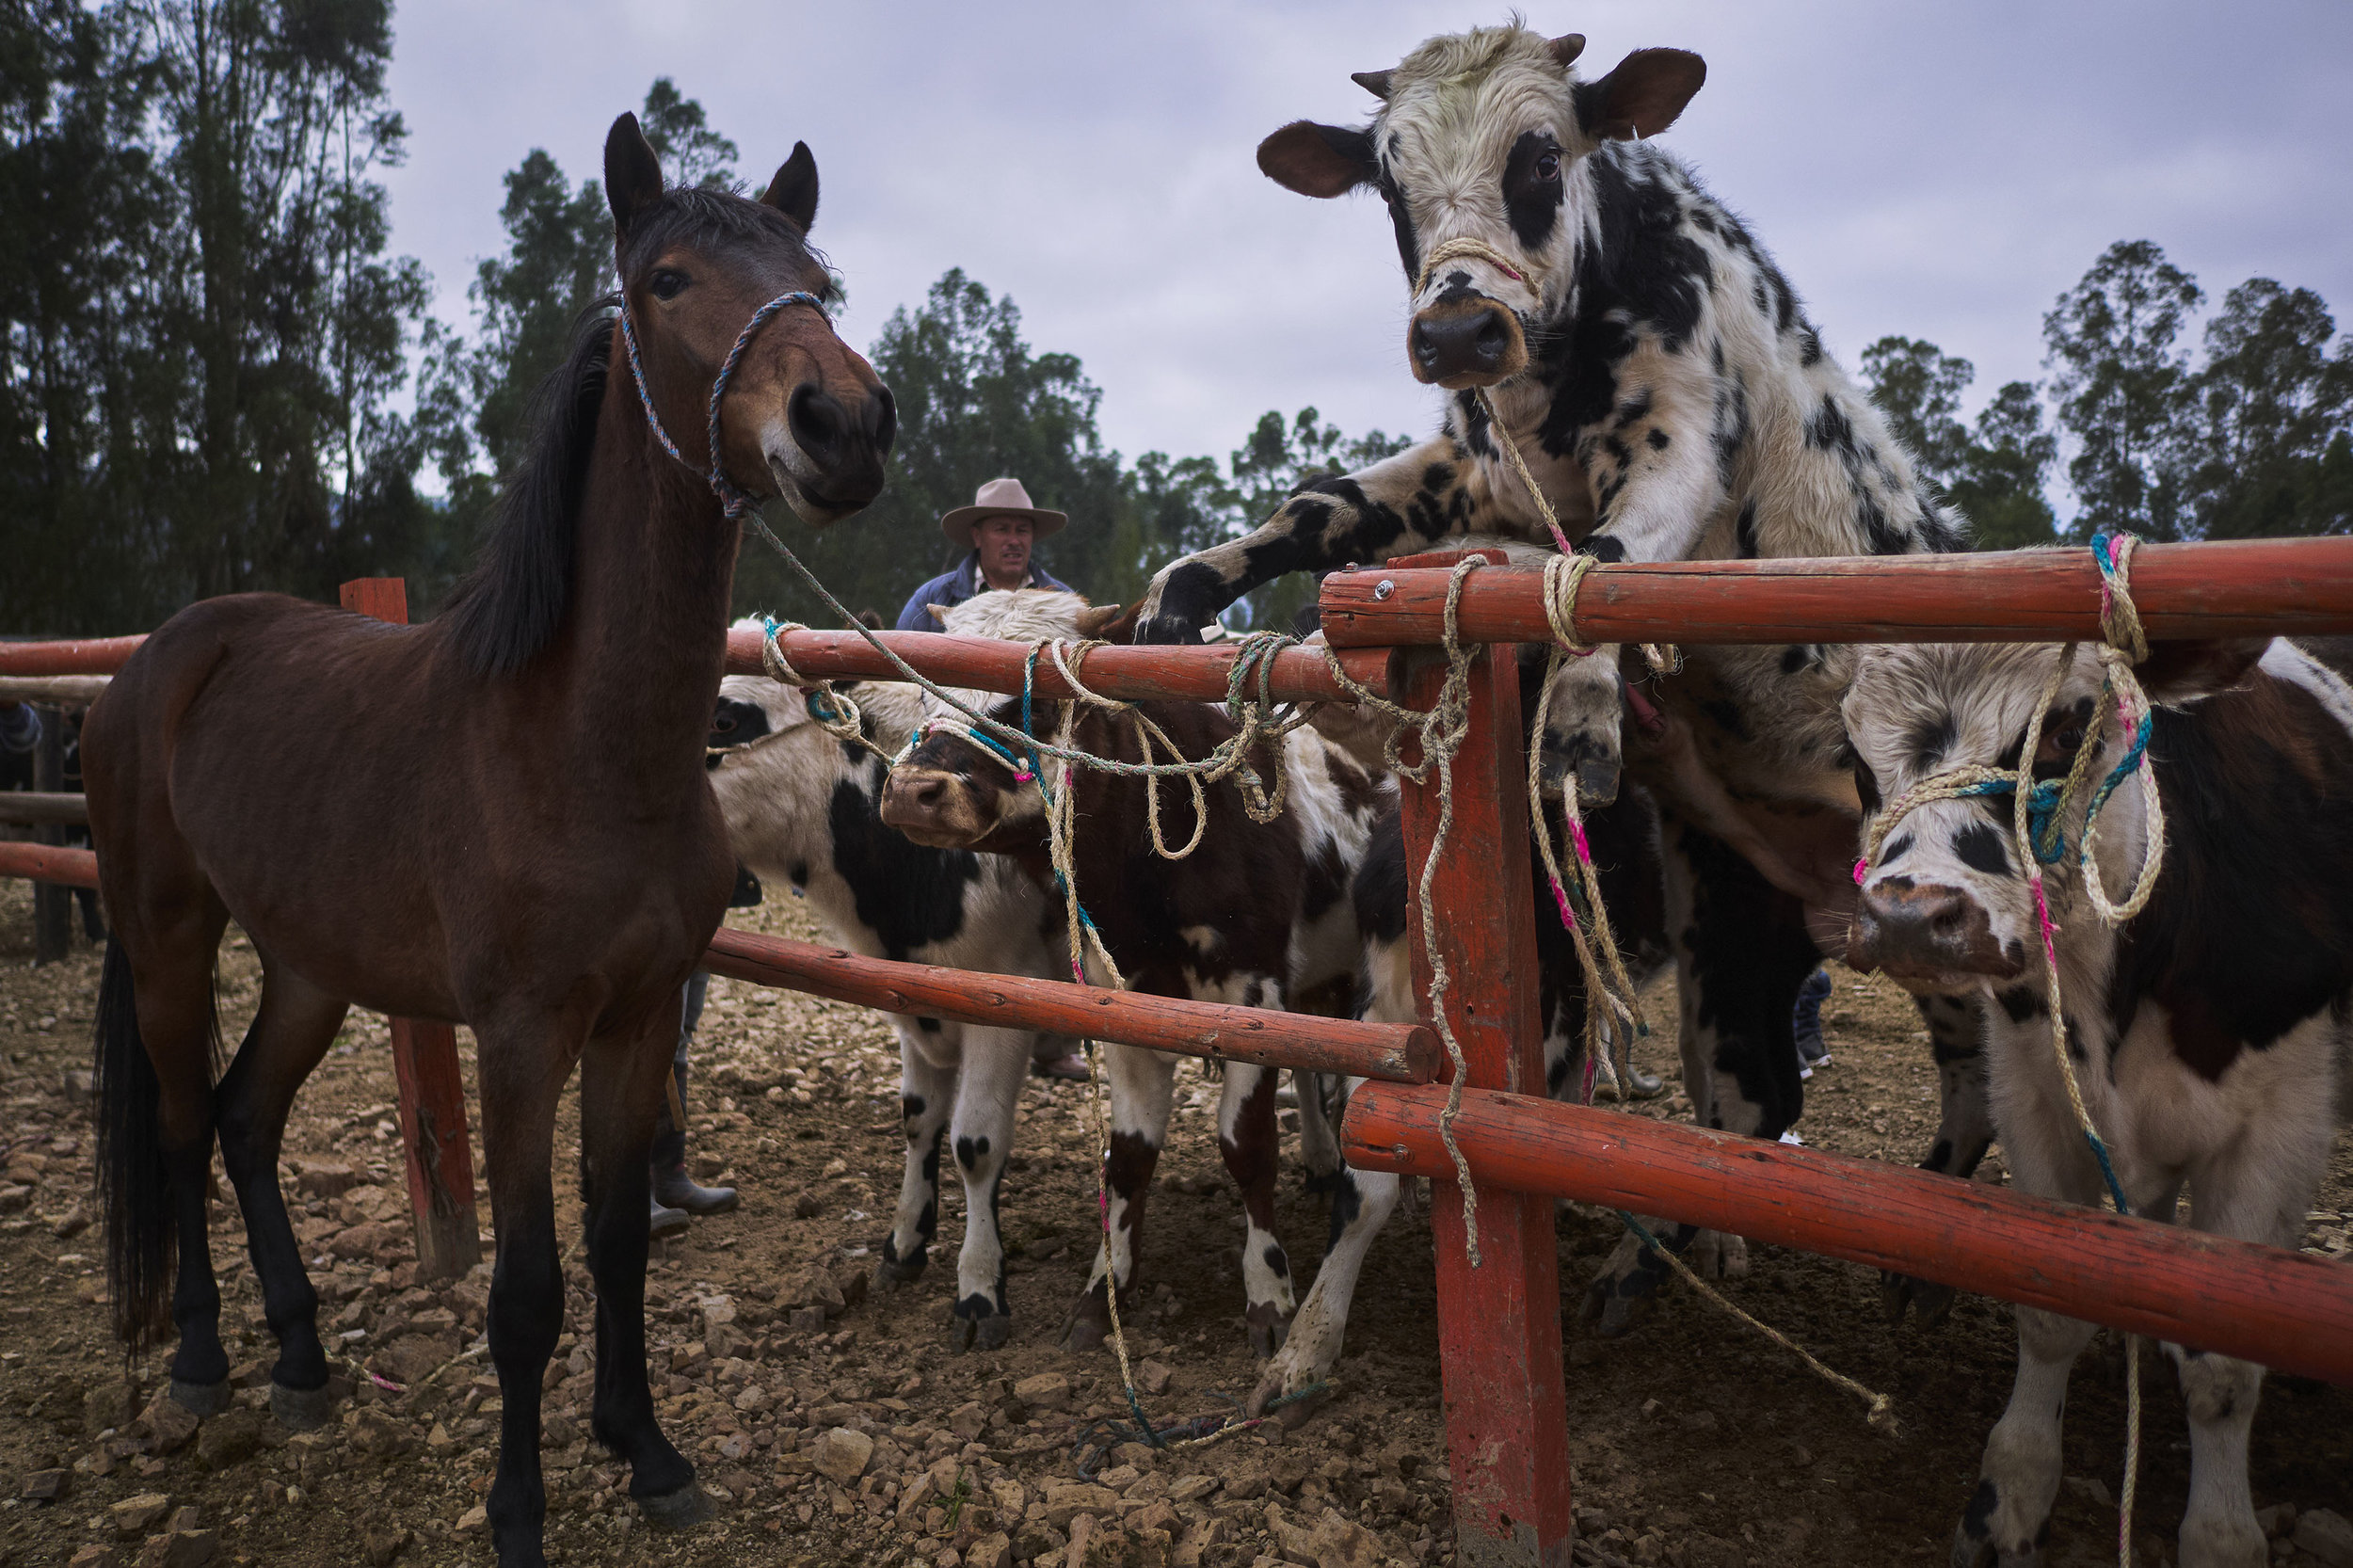 Horses and cows for sale at animal market in Sogamoso, Boyaca, Colombia_1140670.JPG